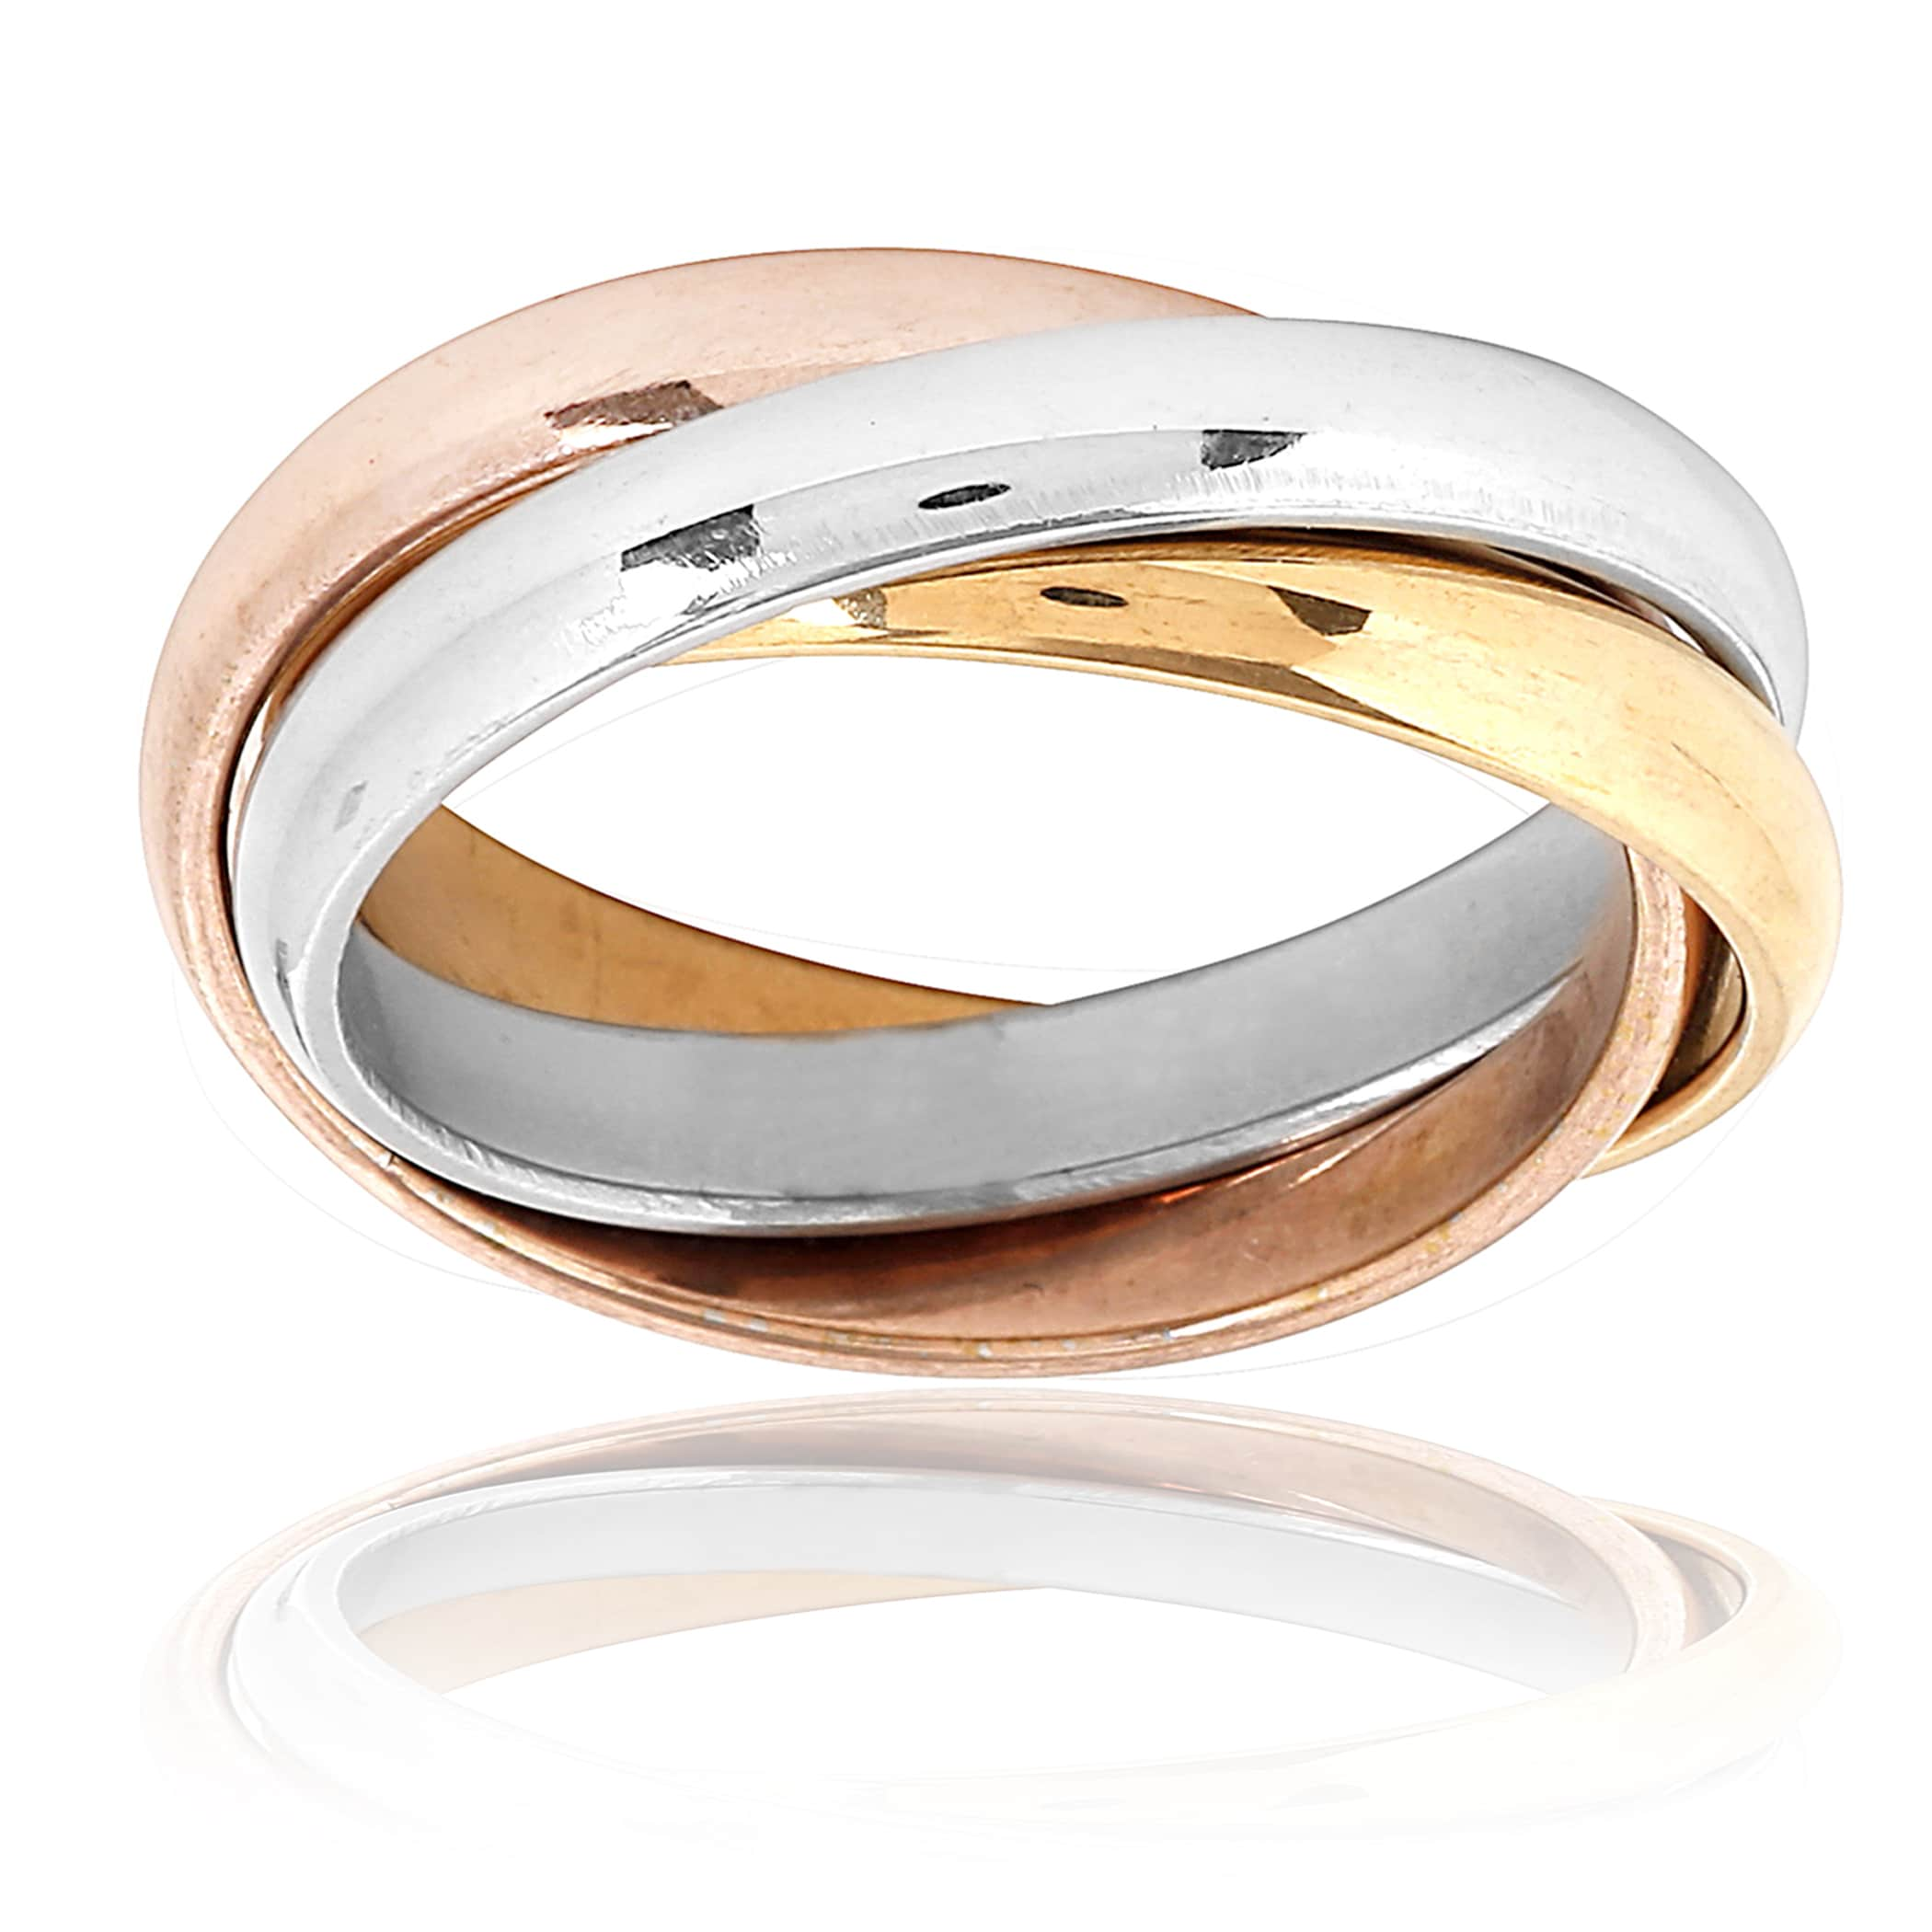 ring normal gallery product jewelry metallic tri lyst criss tritone cross kors rings michael in